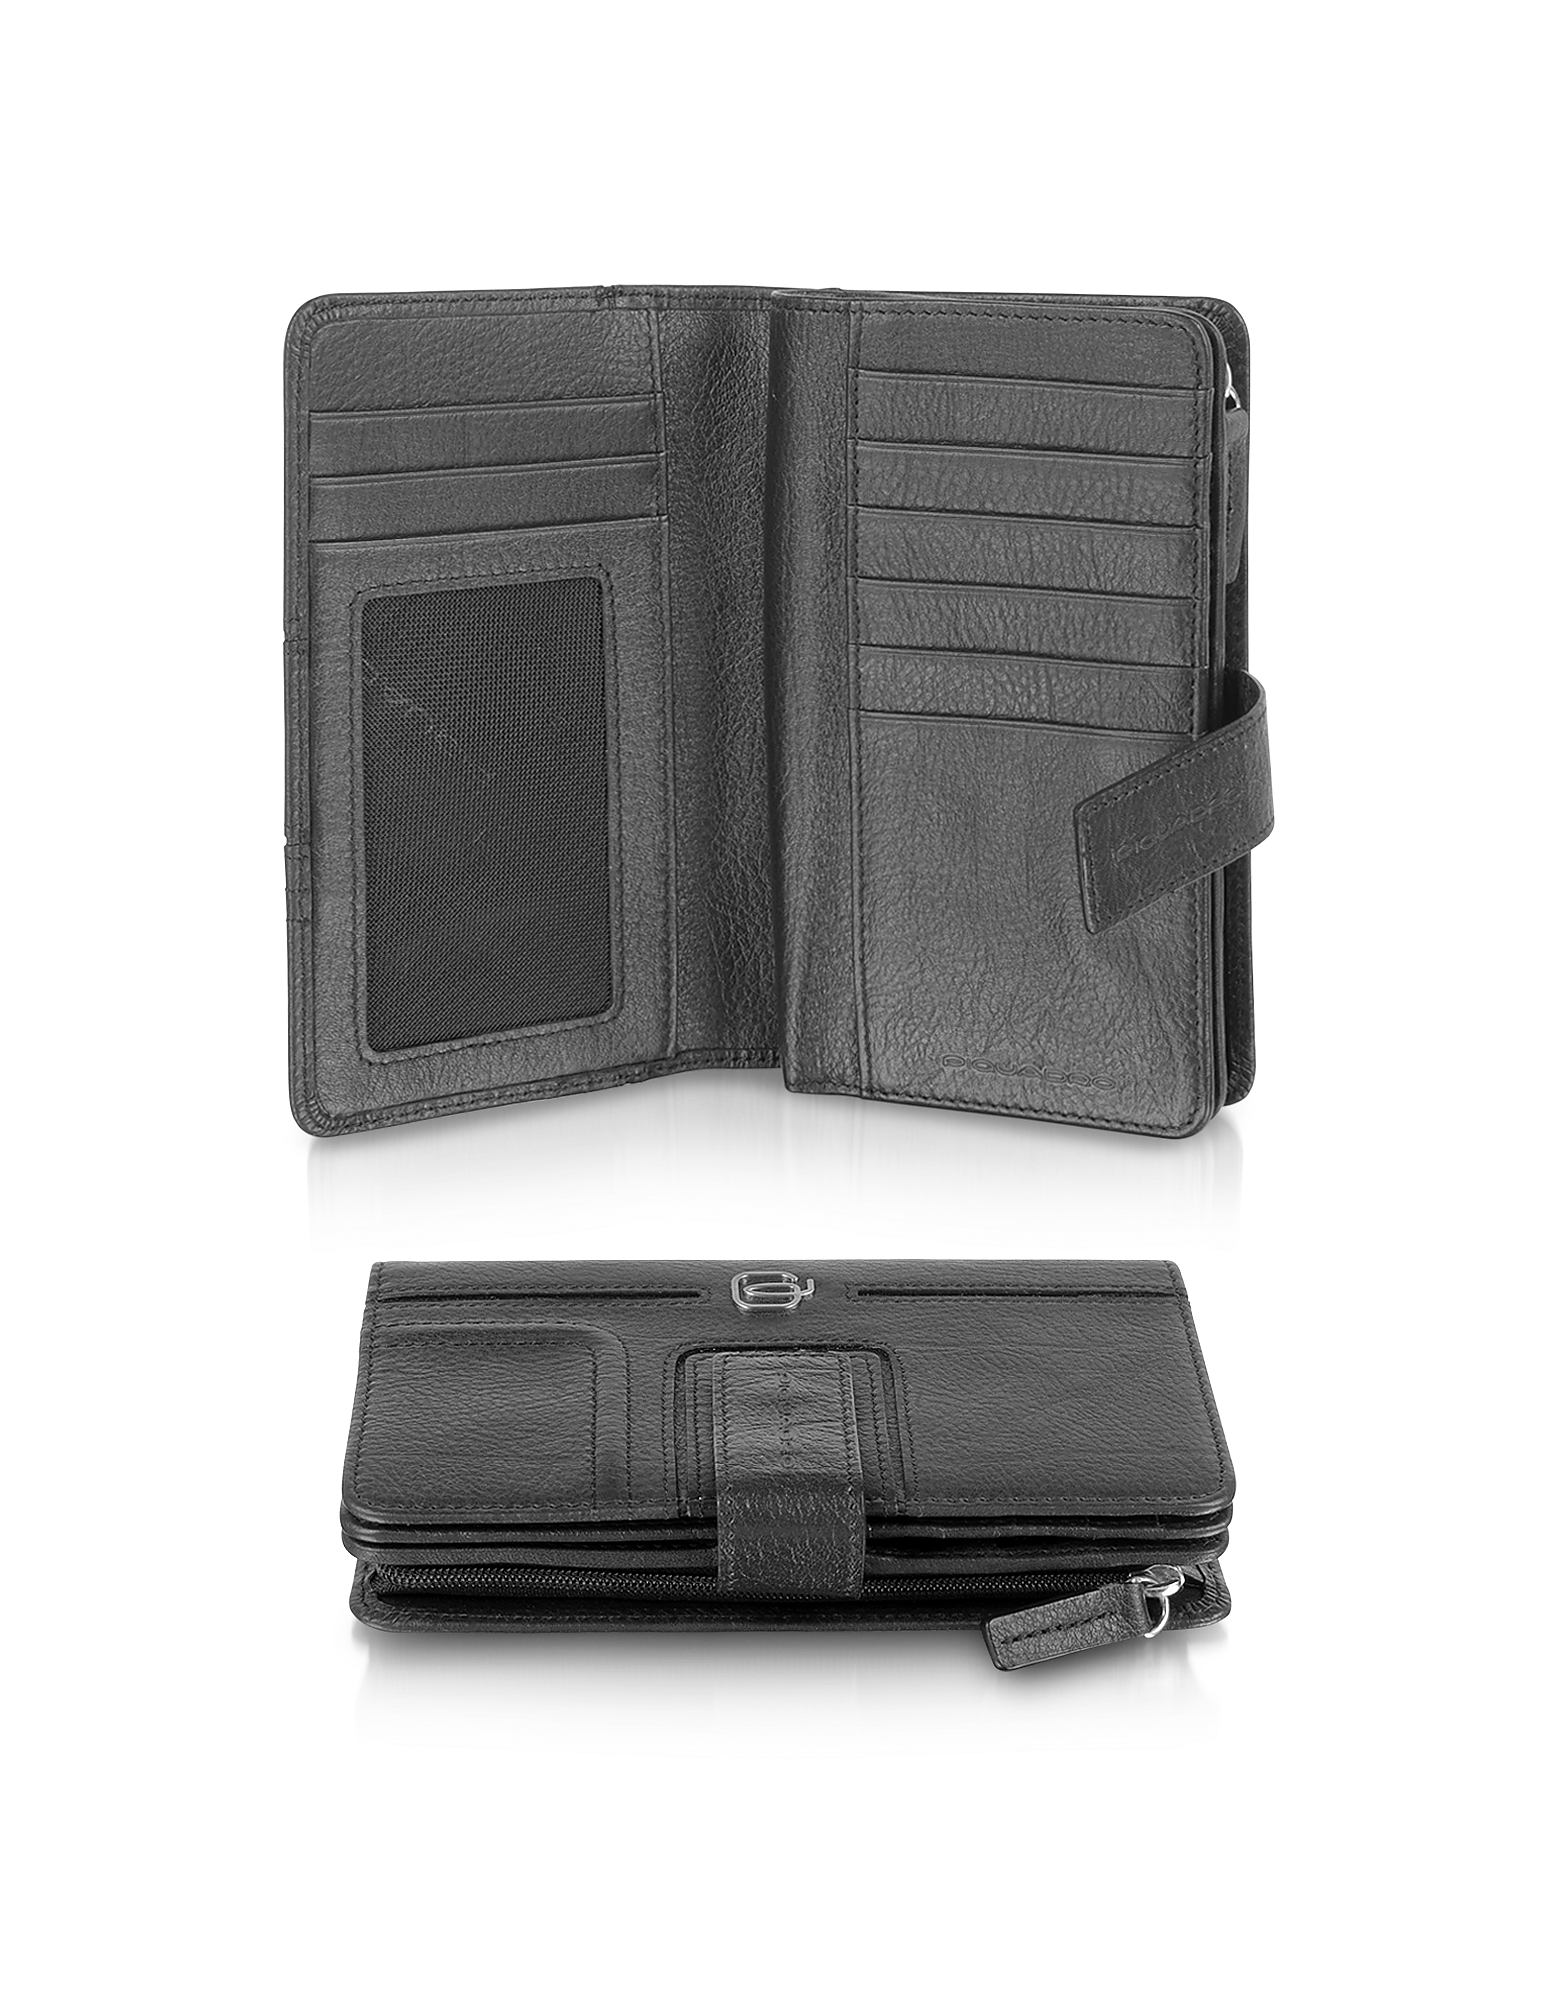 Piquadro Wallets, Vibe - Leather Flap Wallet